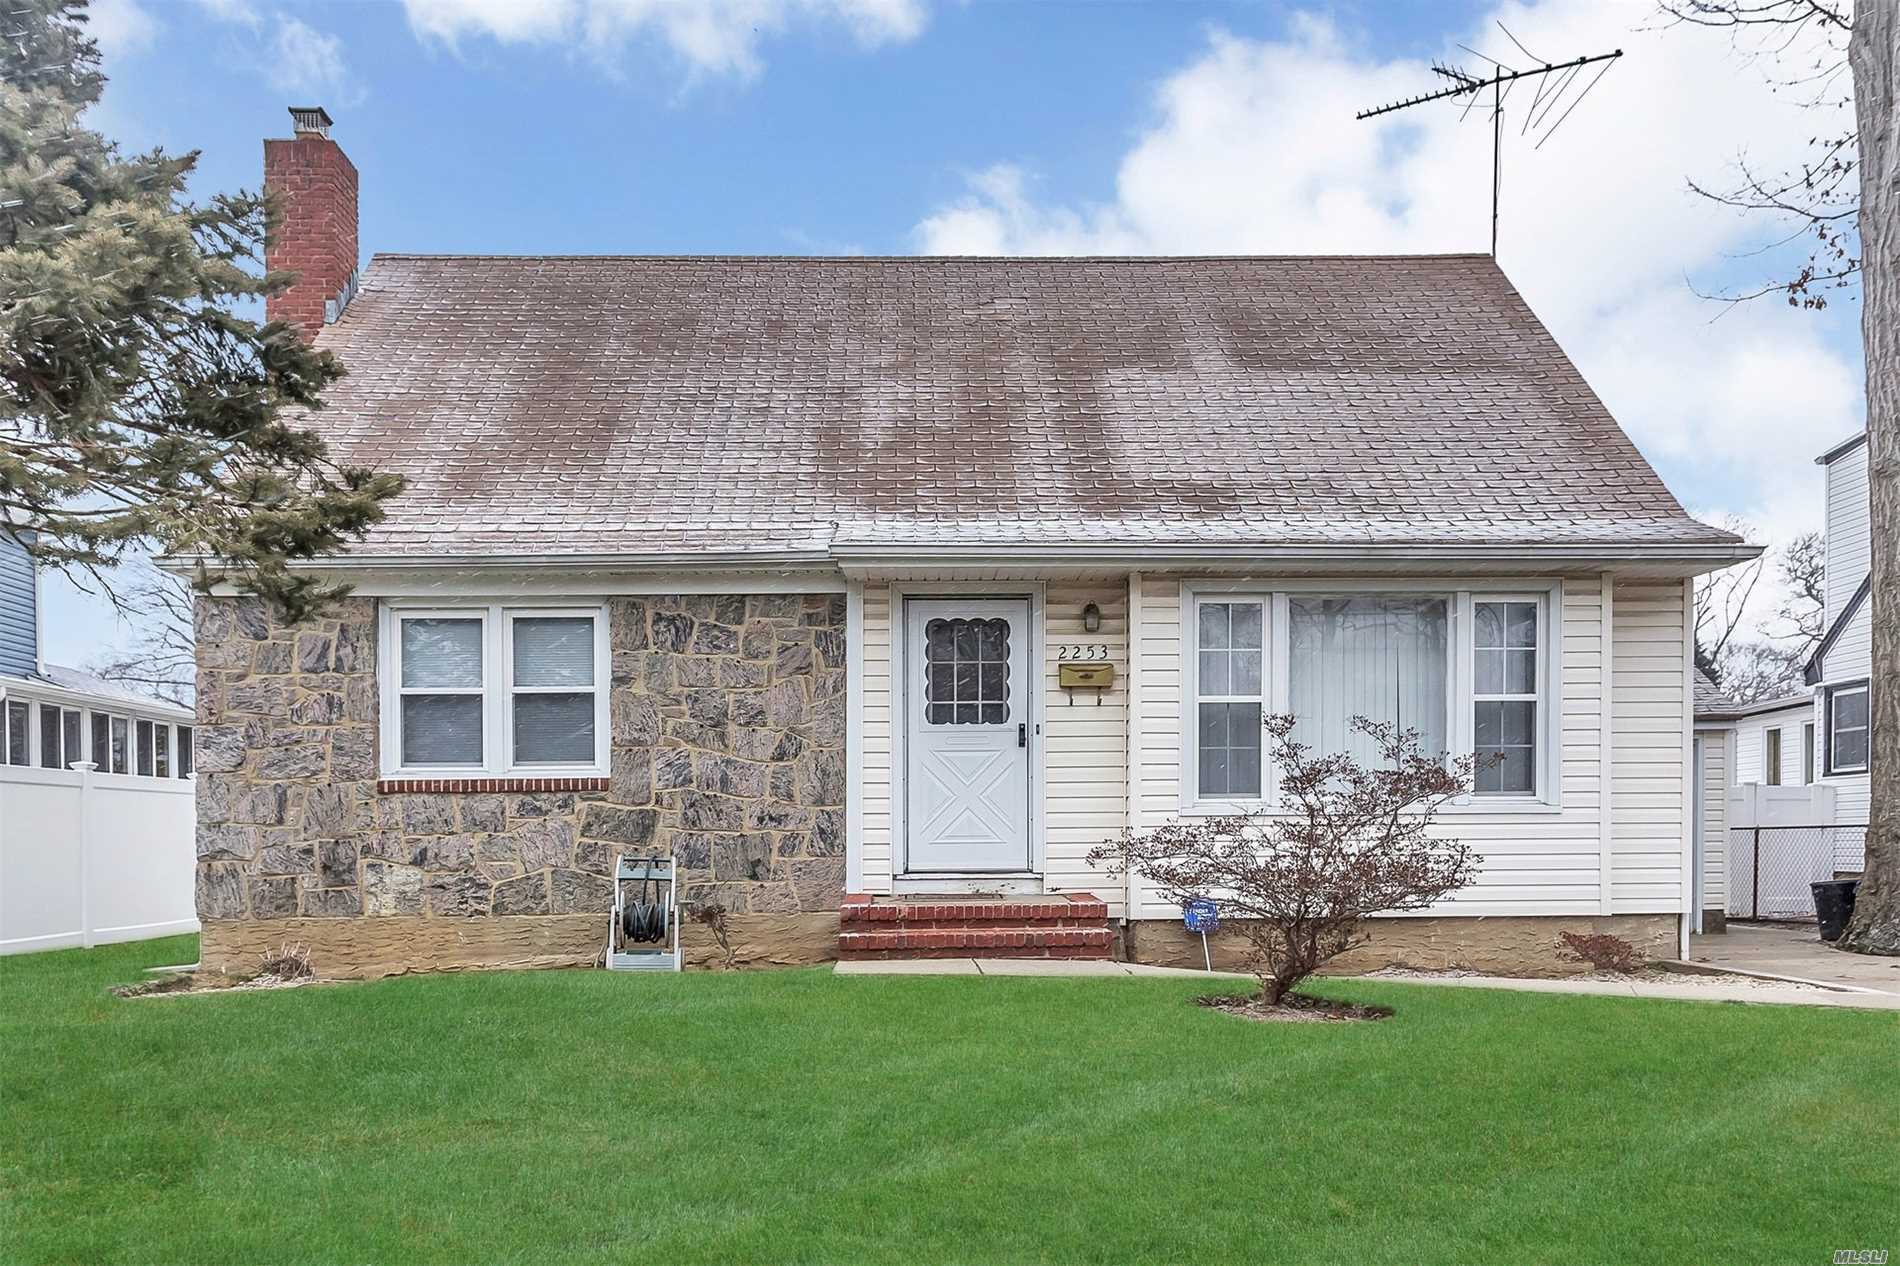 Move In-Condition 5 Bdrm Cape. Large Living Rm, Eik, 4/5 Bedrooms, Hw Floors, Attached Garage, Beautiful Yard. Updates Include: Replacement Windows, Bath, Electric, Driveway. Gas Heat. Priced To Sell!!